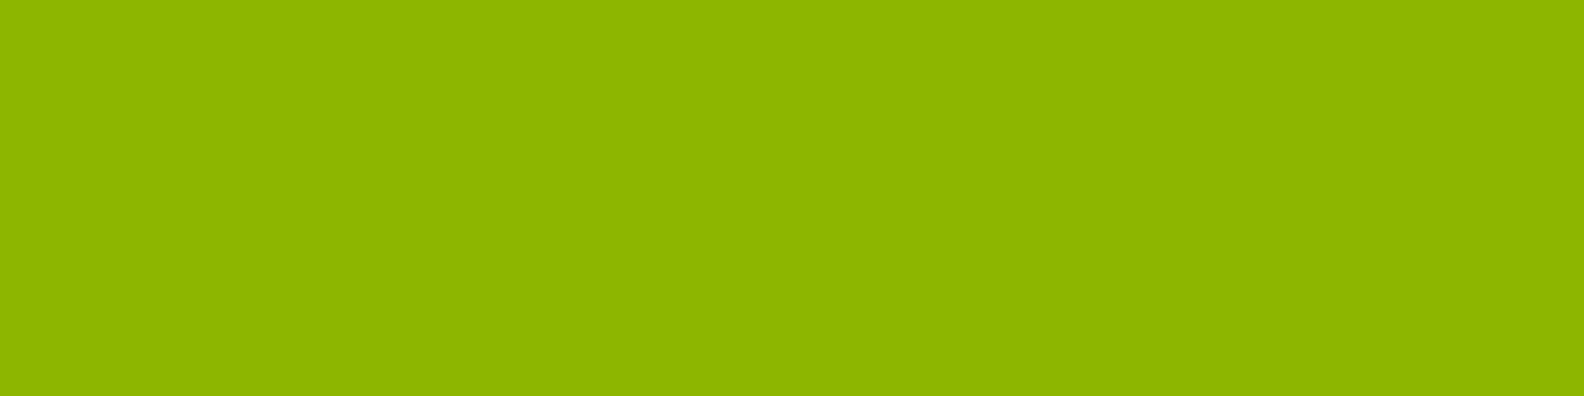 1584x396 Apple Green Solid Color Background